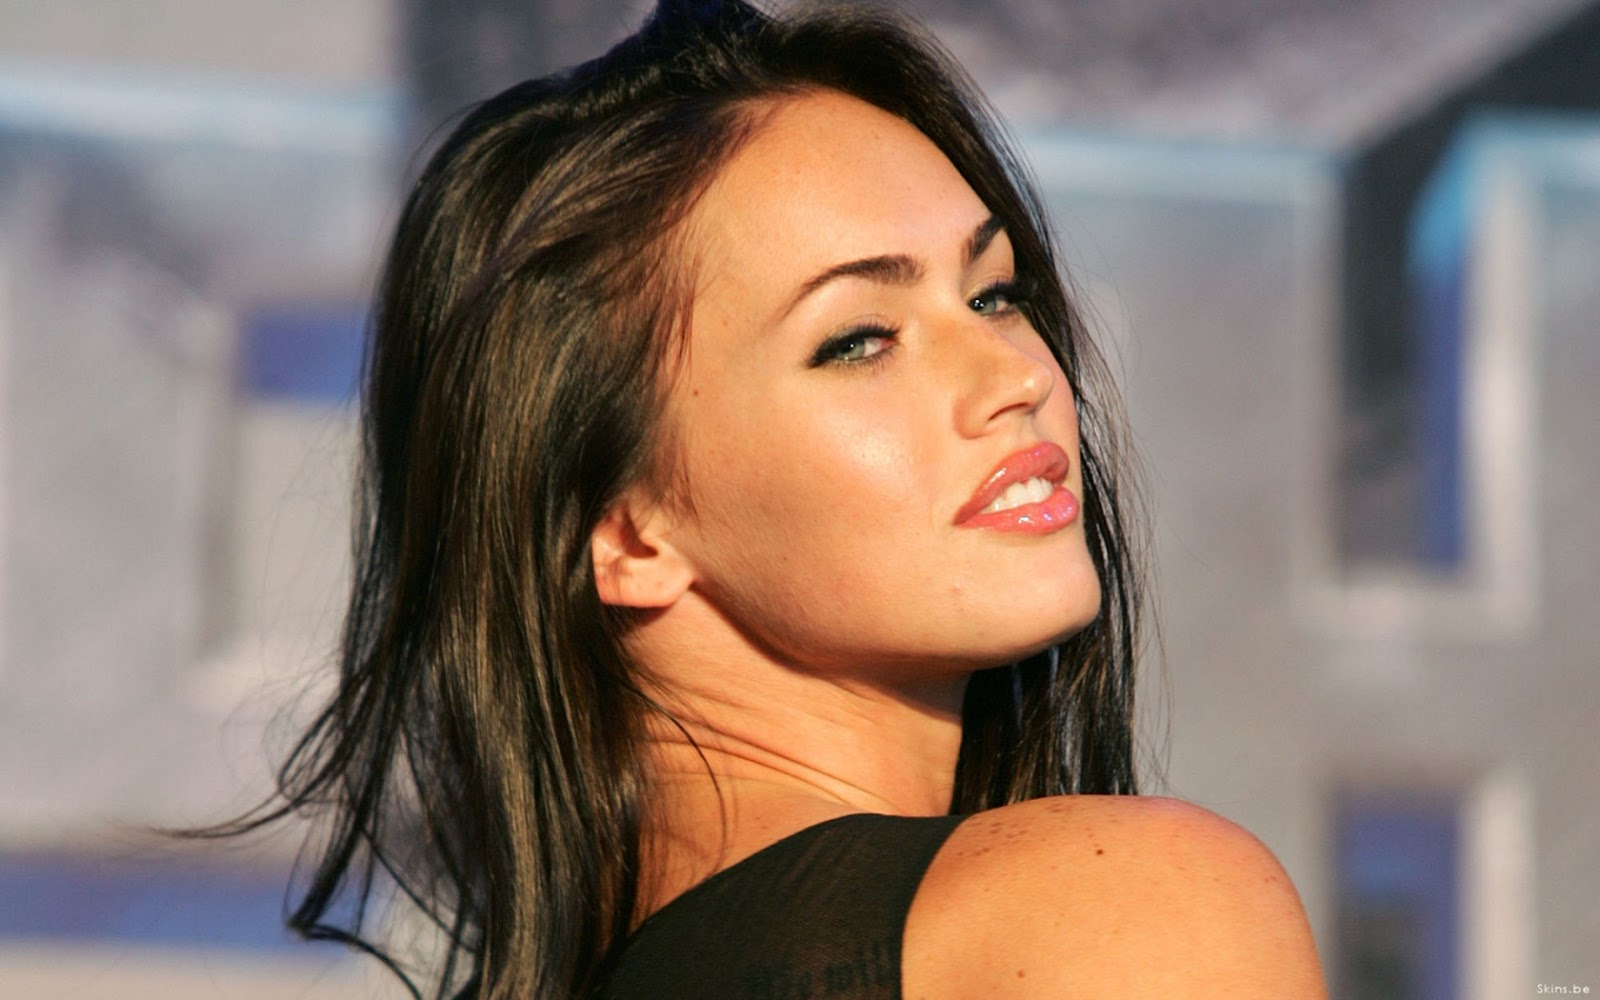 http://3.bp.blogspot.com/-TK4MRL9FAXA/USoxt8Z8P5I/AAAAAAAAAIo/tHmSfoC-X5s/s1600/Megan+Fox+Actress+HD+Wallpapers.jpg